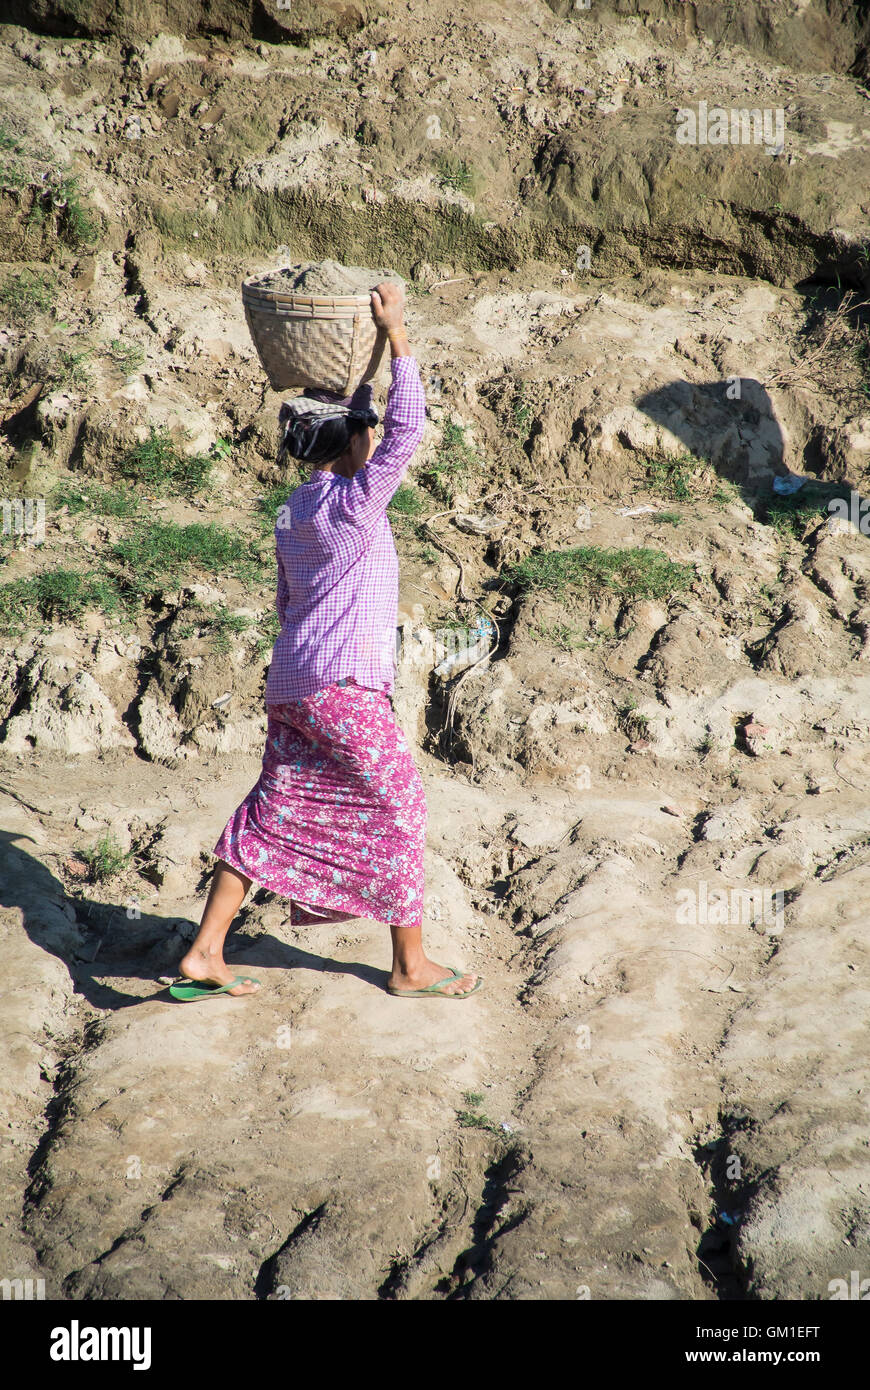 Village Woman Carrying Clay From River's Edge to Top of Bank, Myanmar - Stock Image